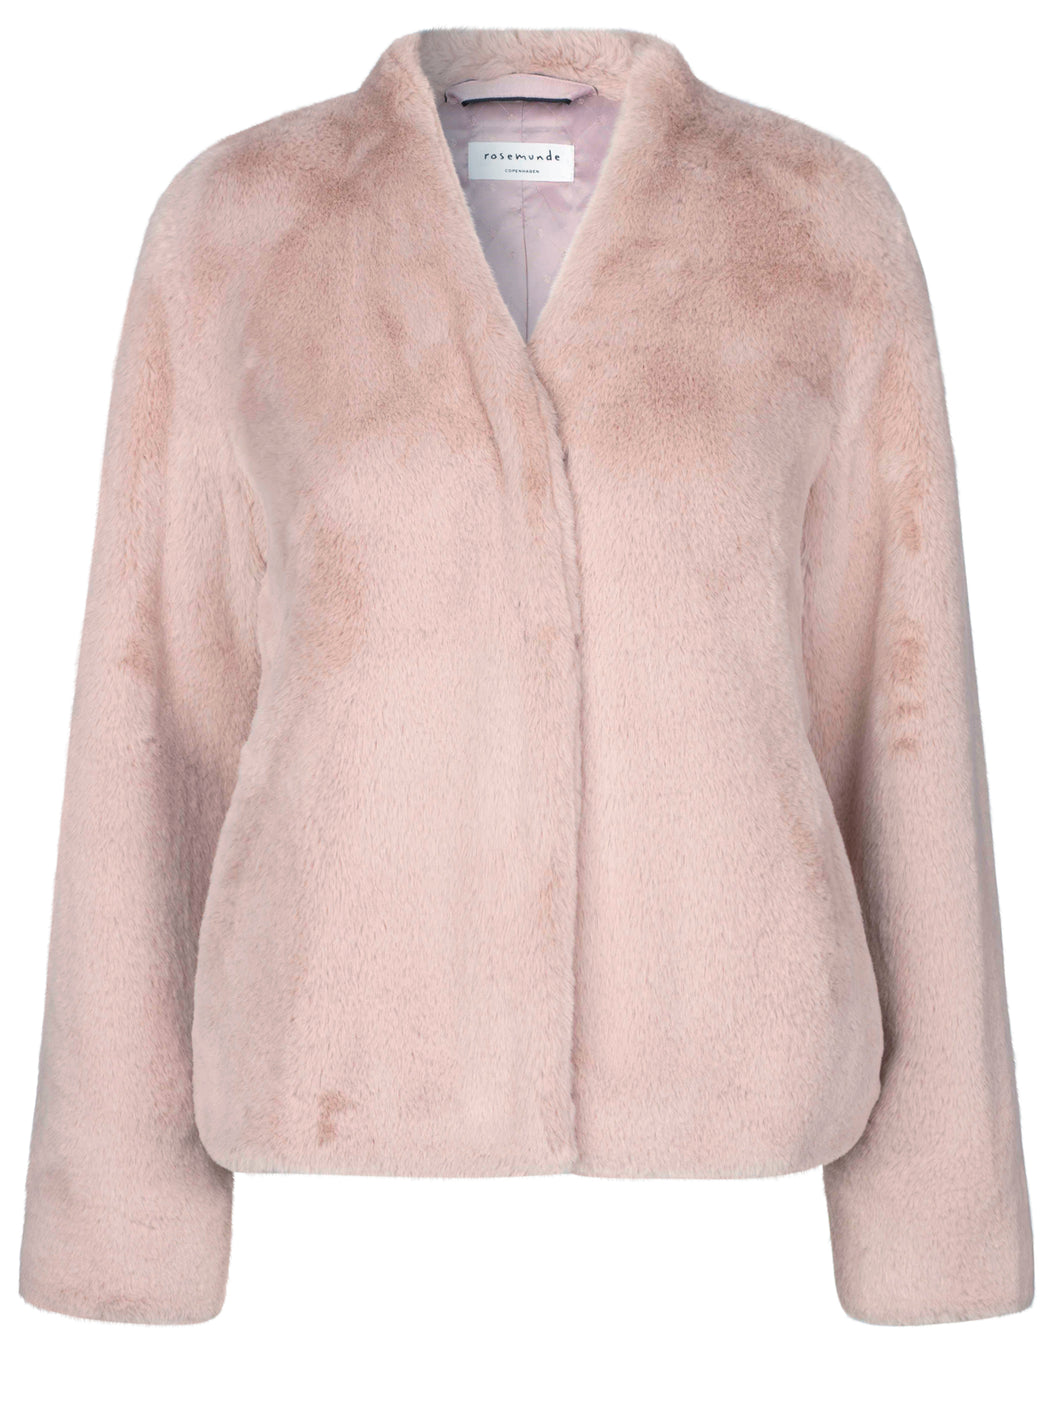 Monaco Faux Fur Coat Vintage Powder